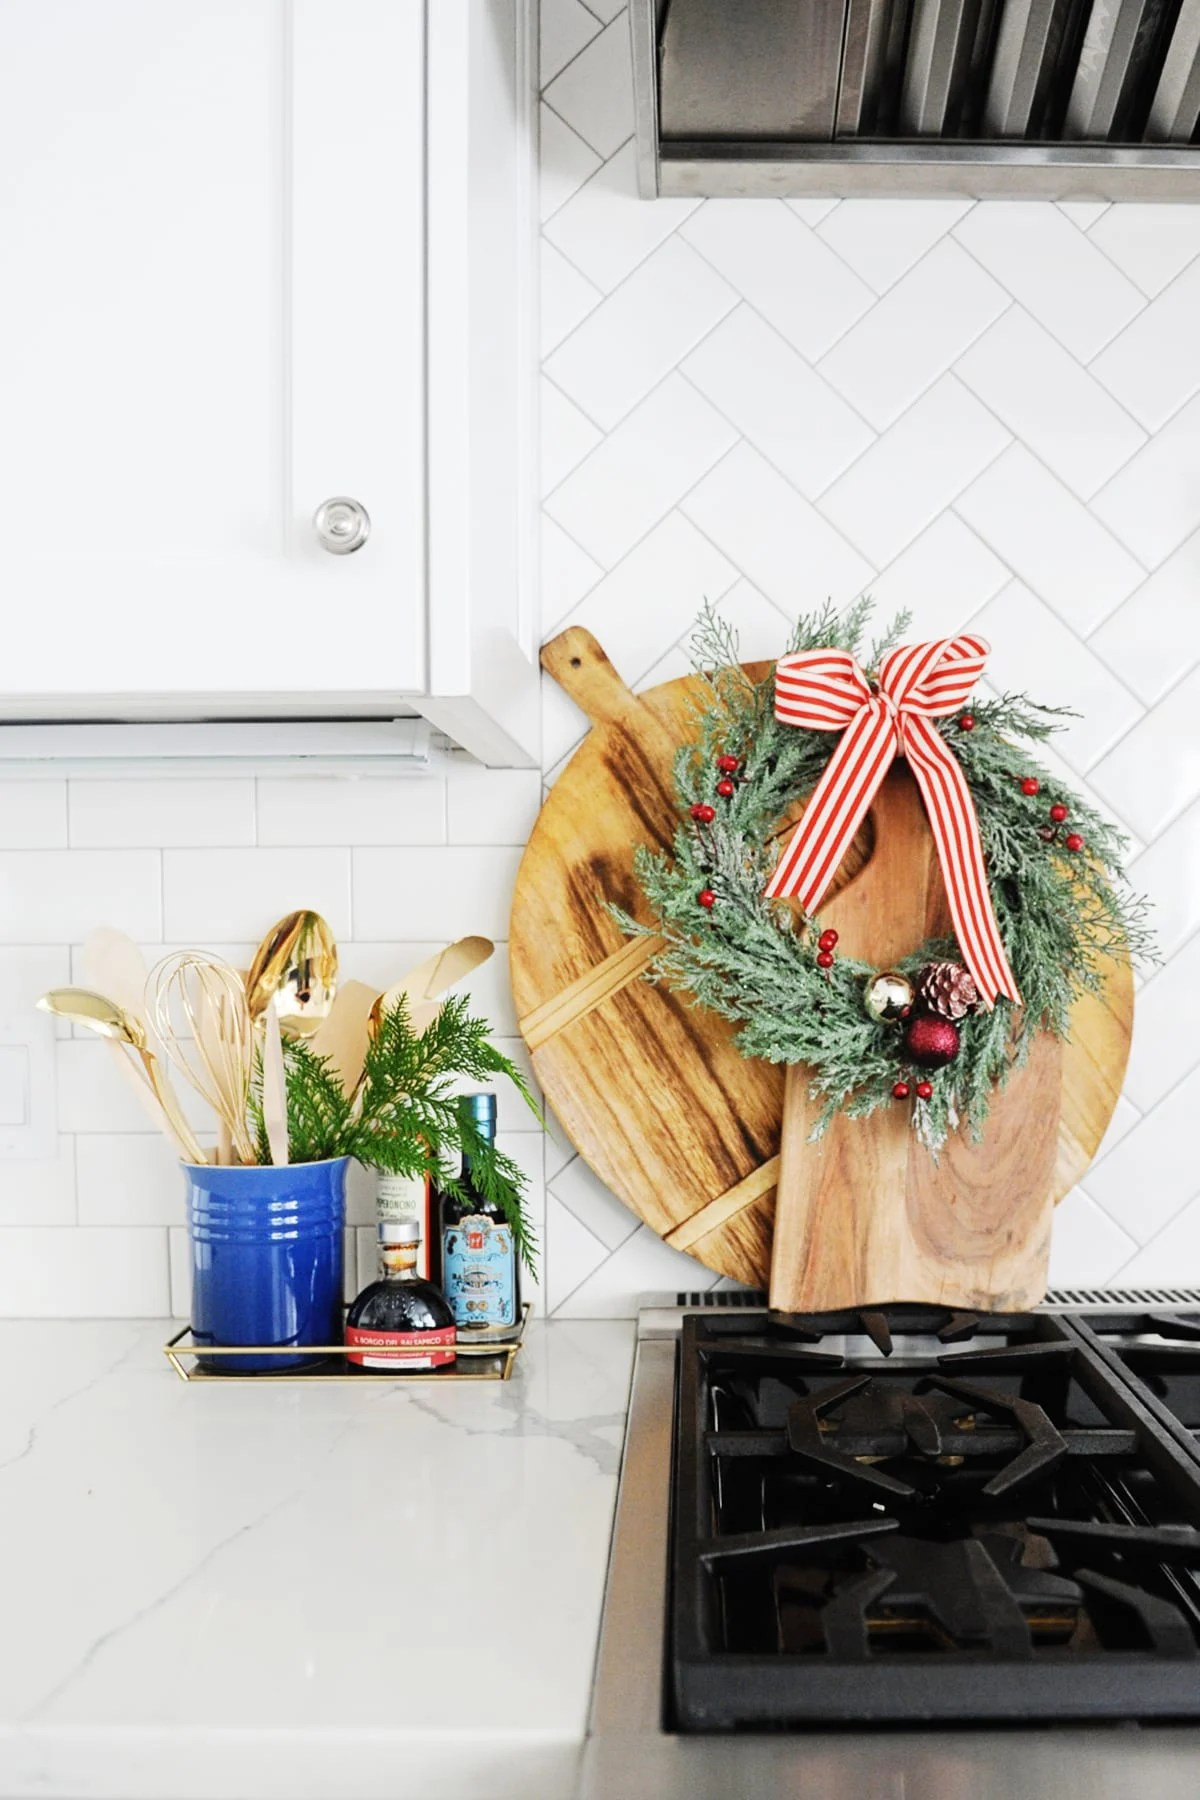 20 Beautiful Christmas Kitchen Decorating Ideas